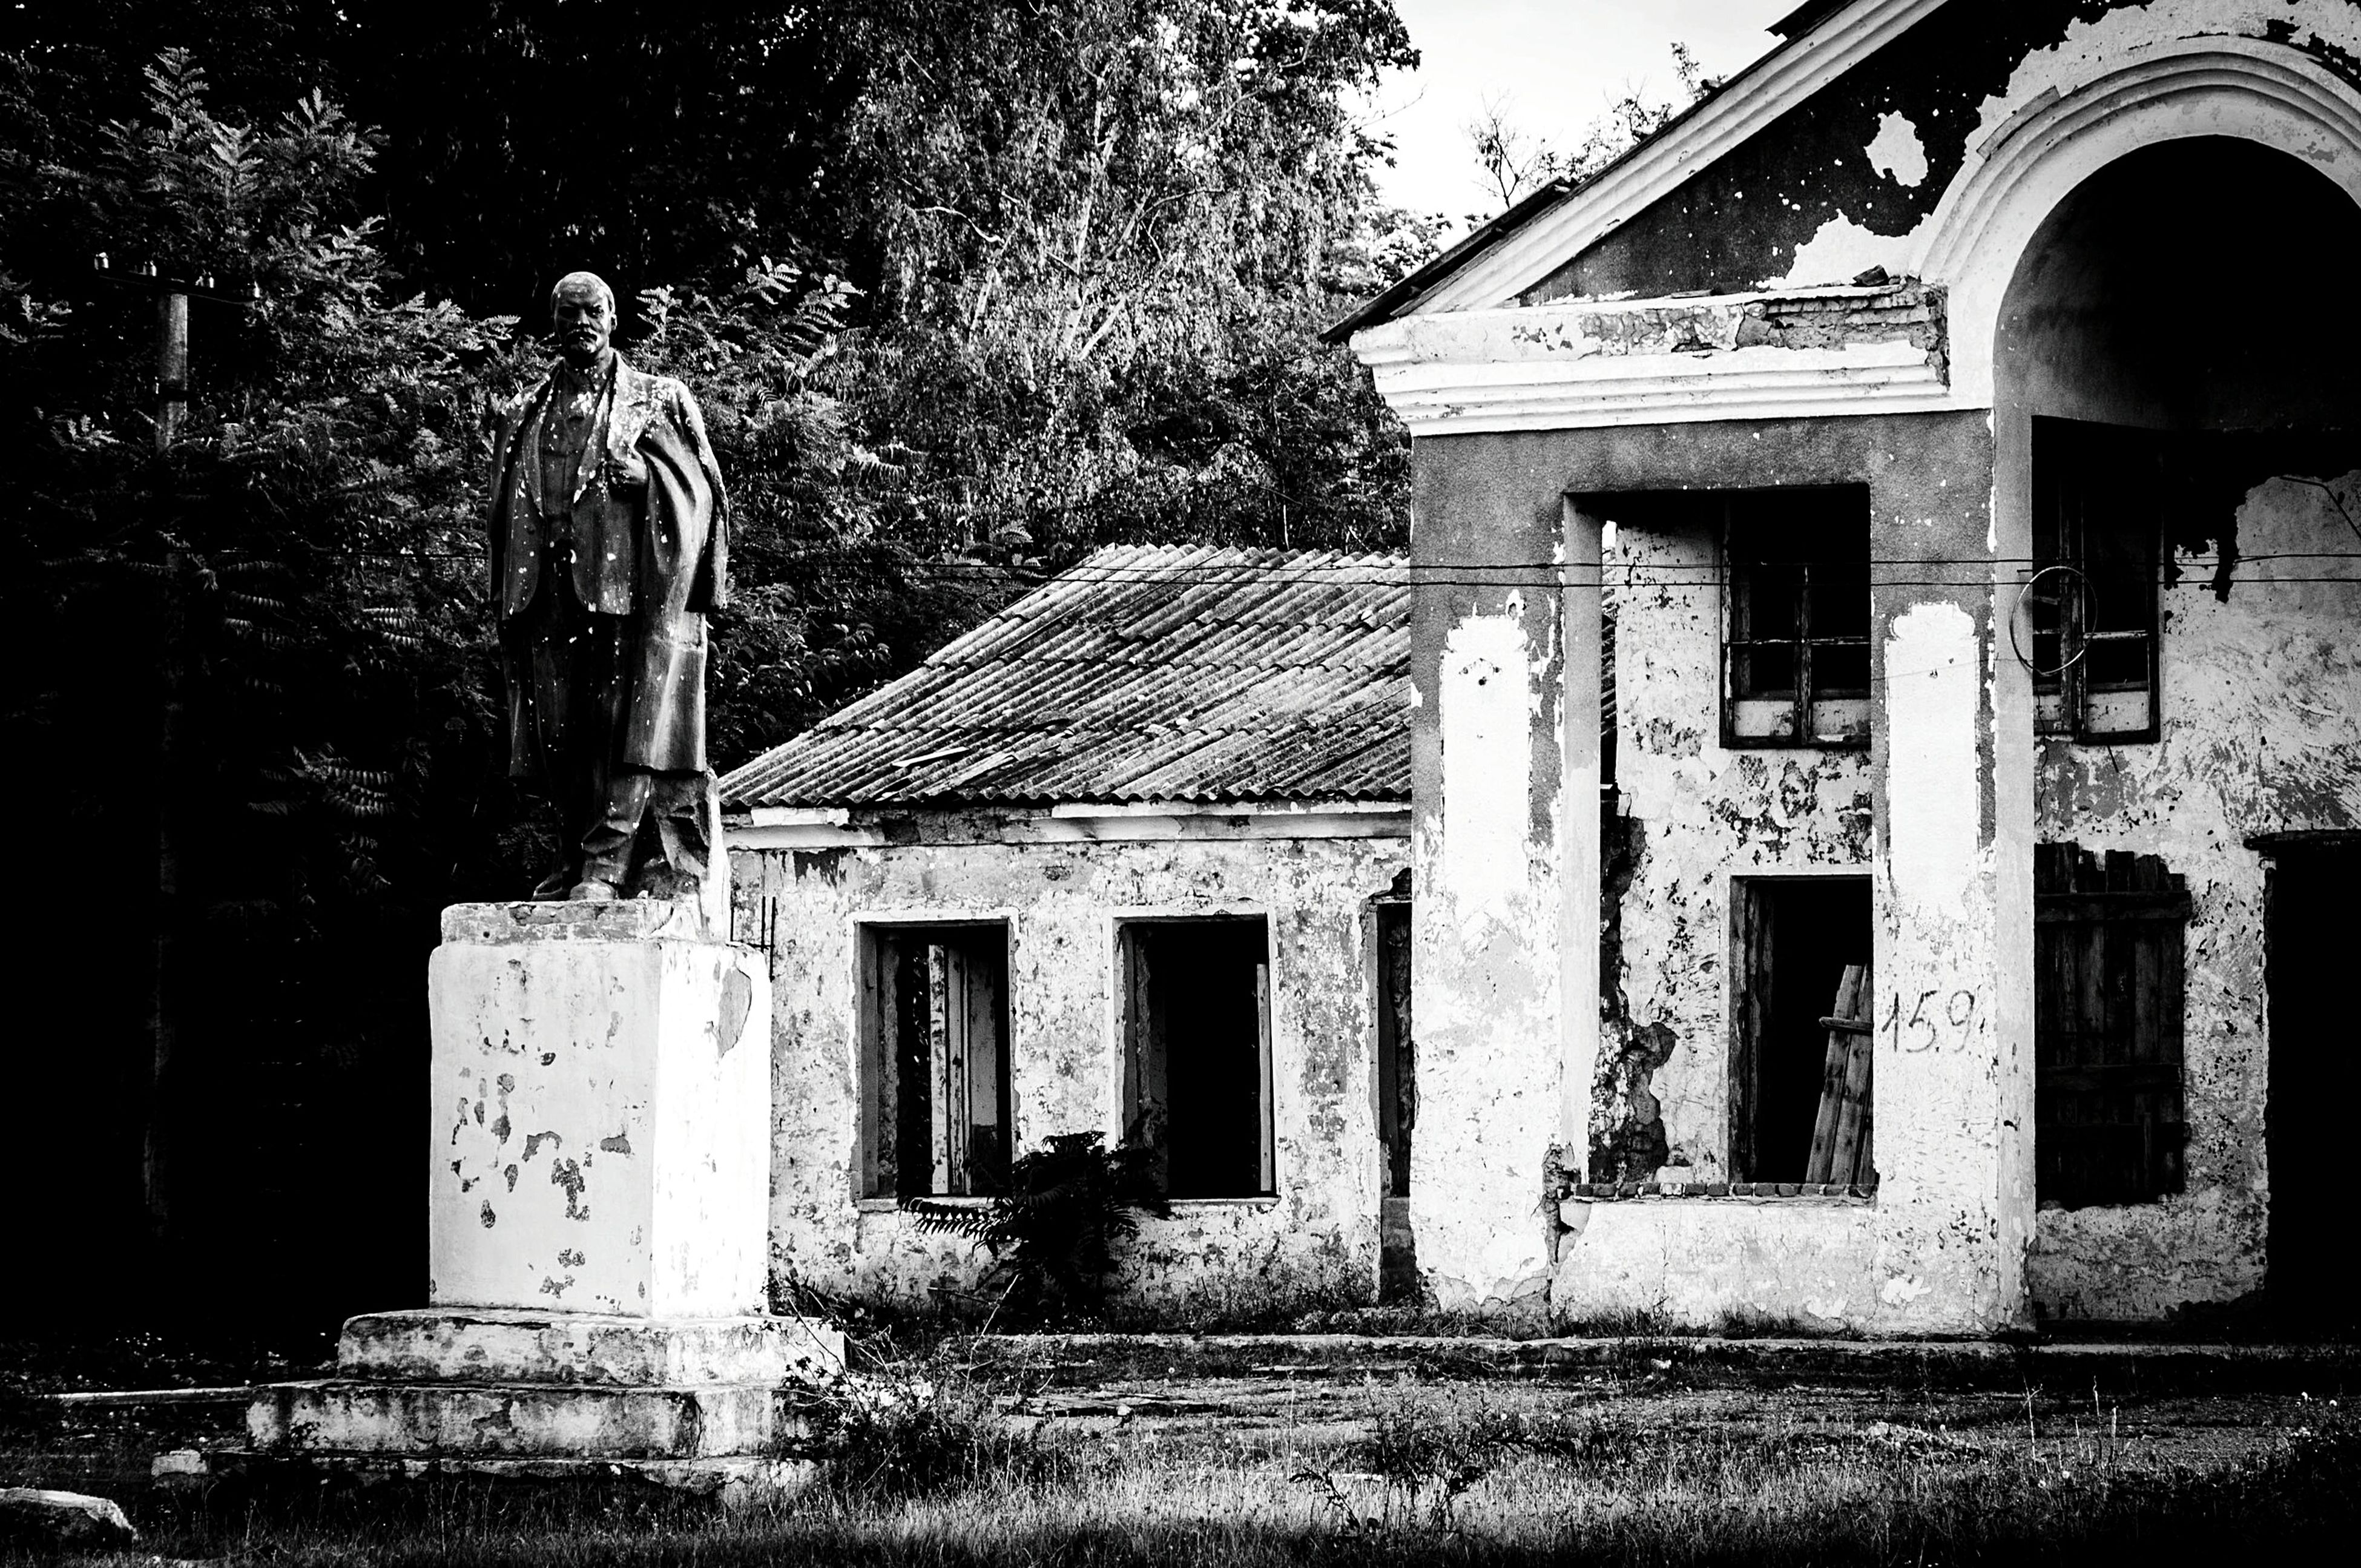 architecture, built structure, building exterior, tree, house, old, arch, window, history, building, facade, exterior, residential structure, plant, outdoors, day, residential building, low angle view, abandoned, entrance